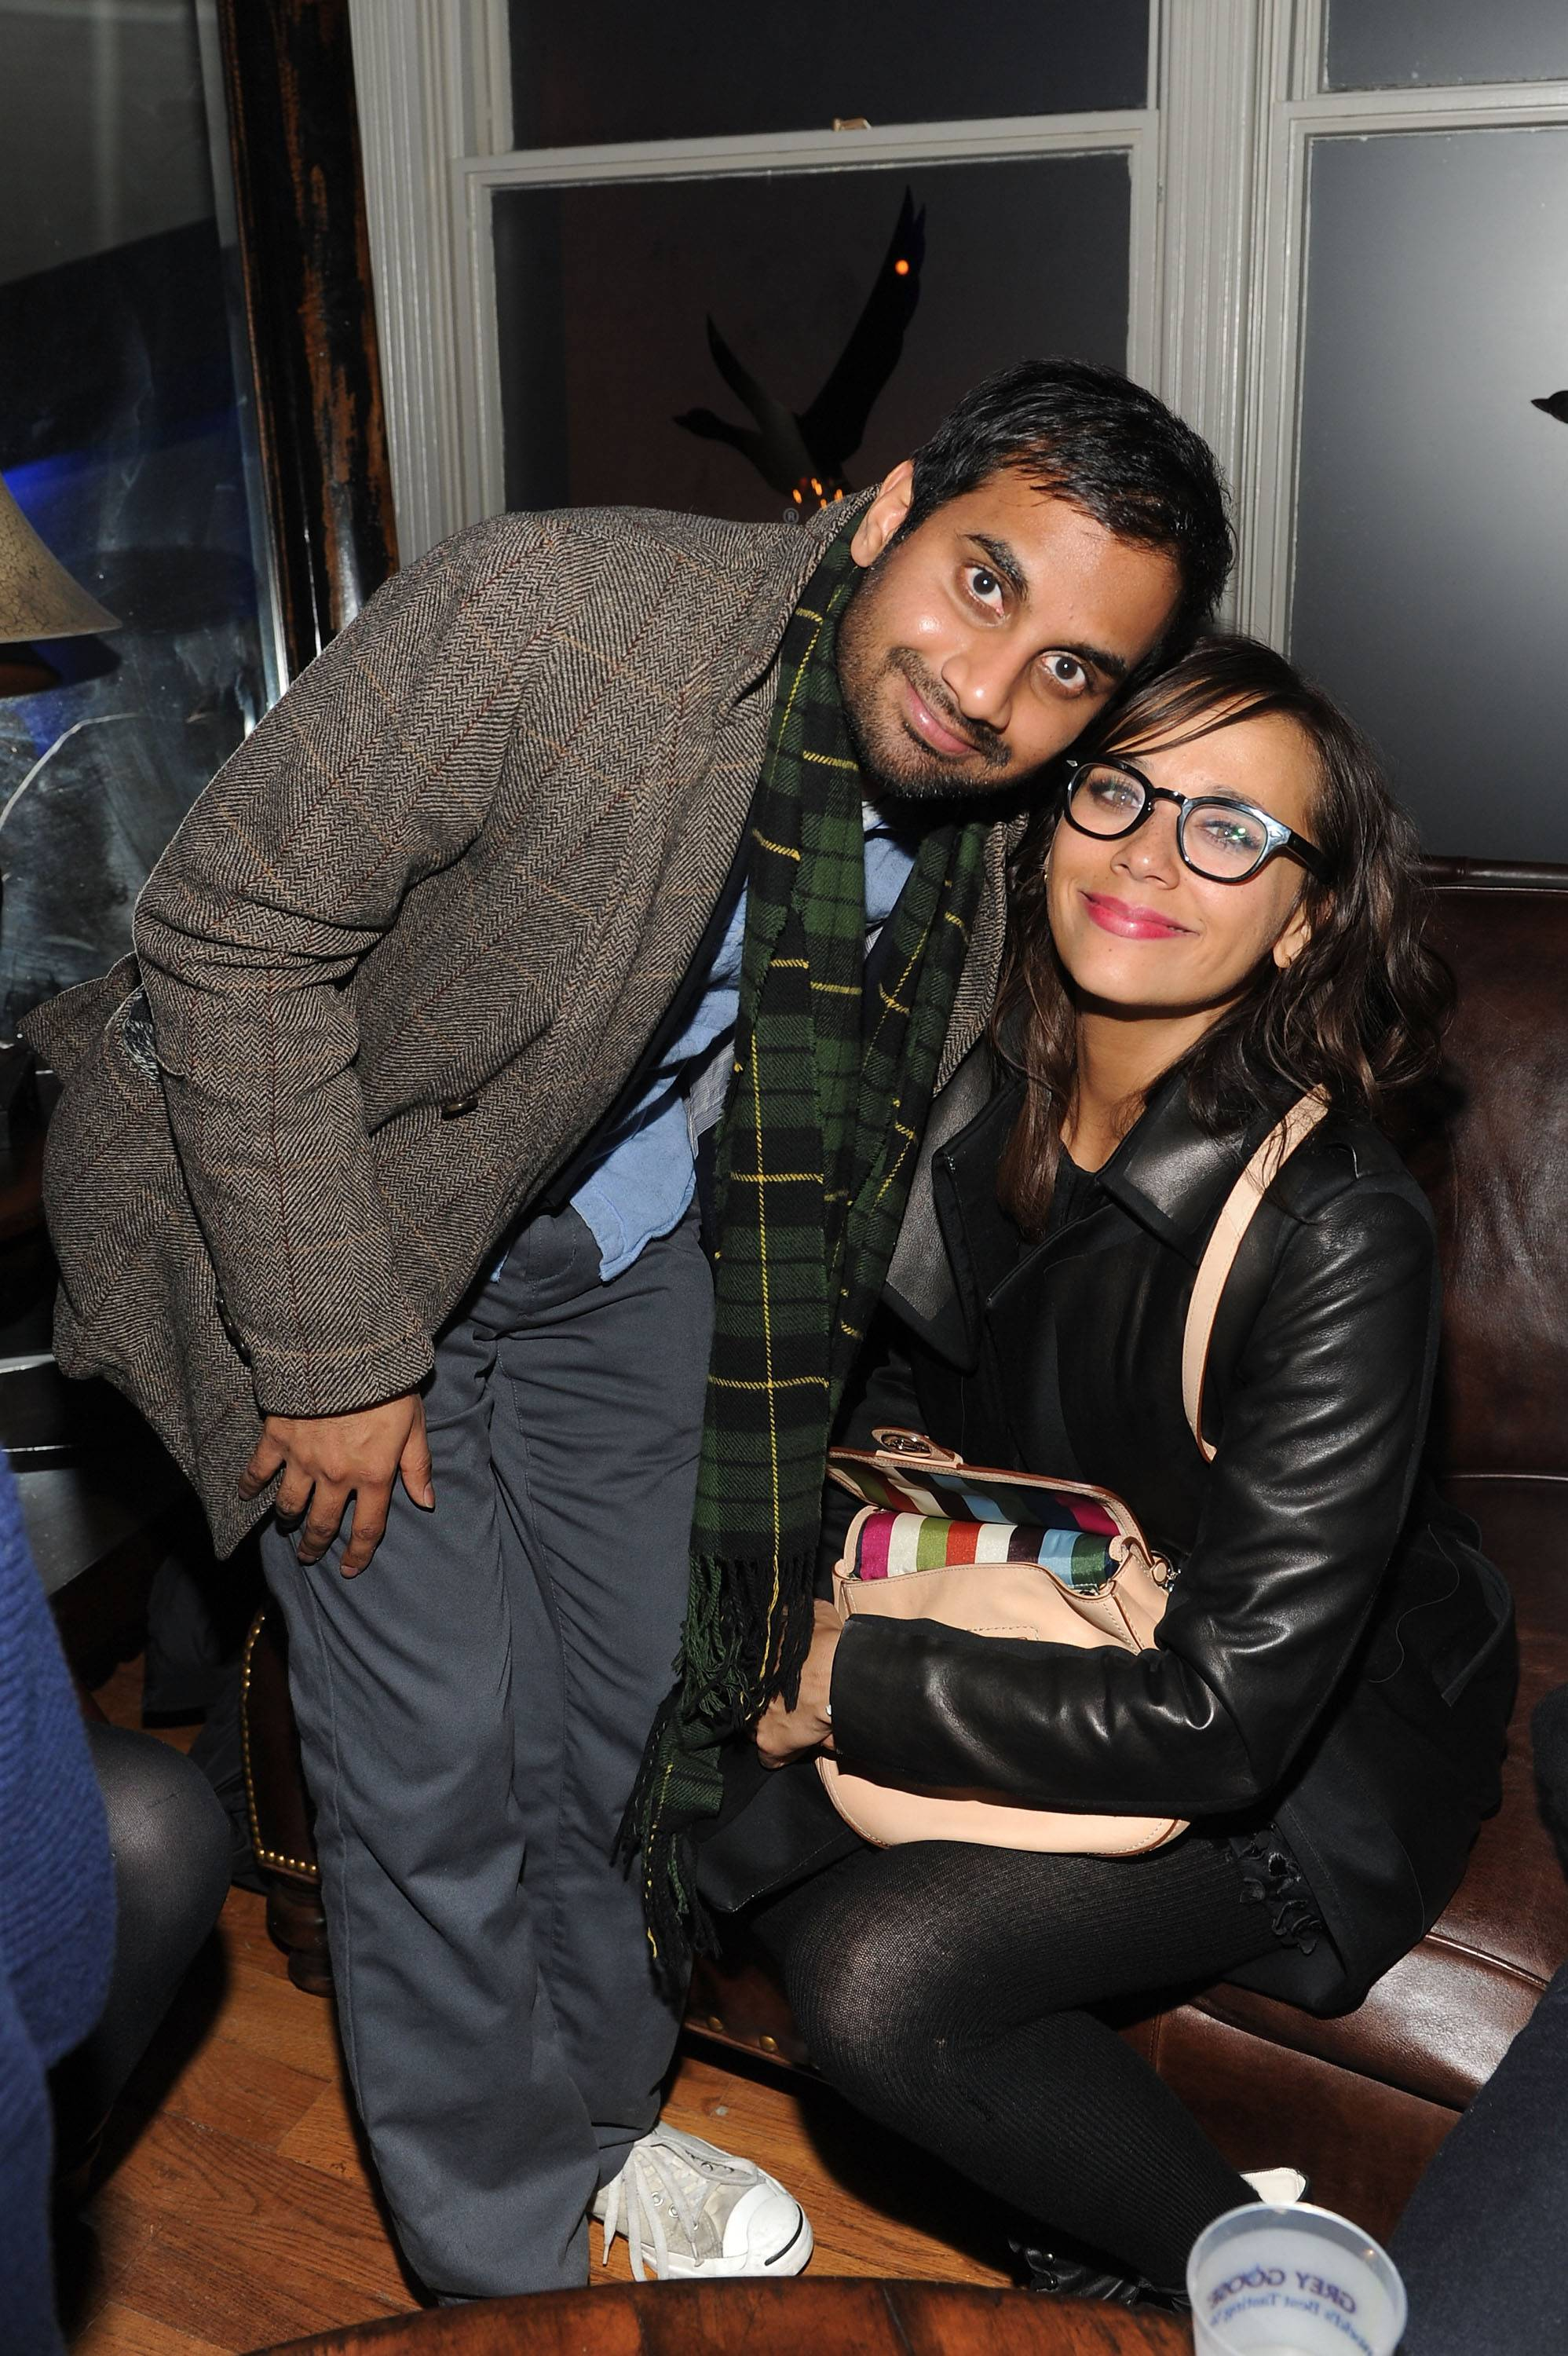 Aziz Ansari and Rashida Jones at